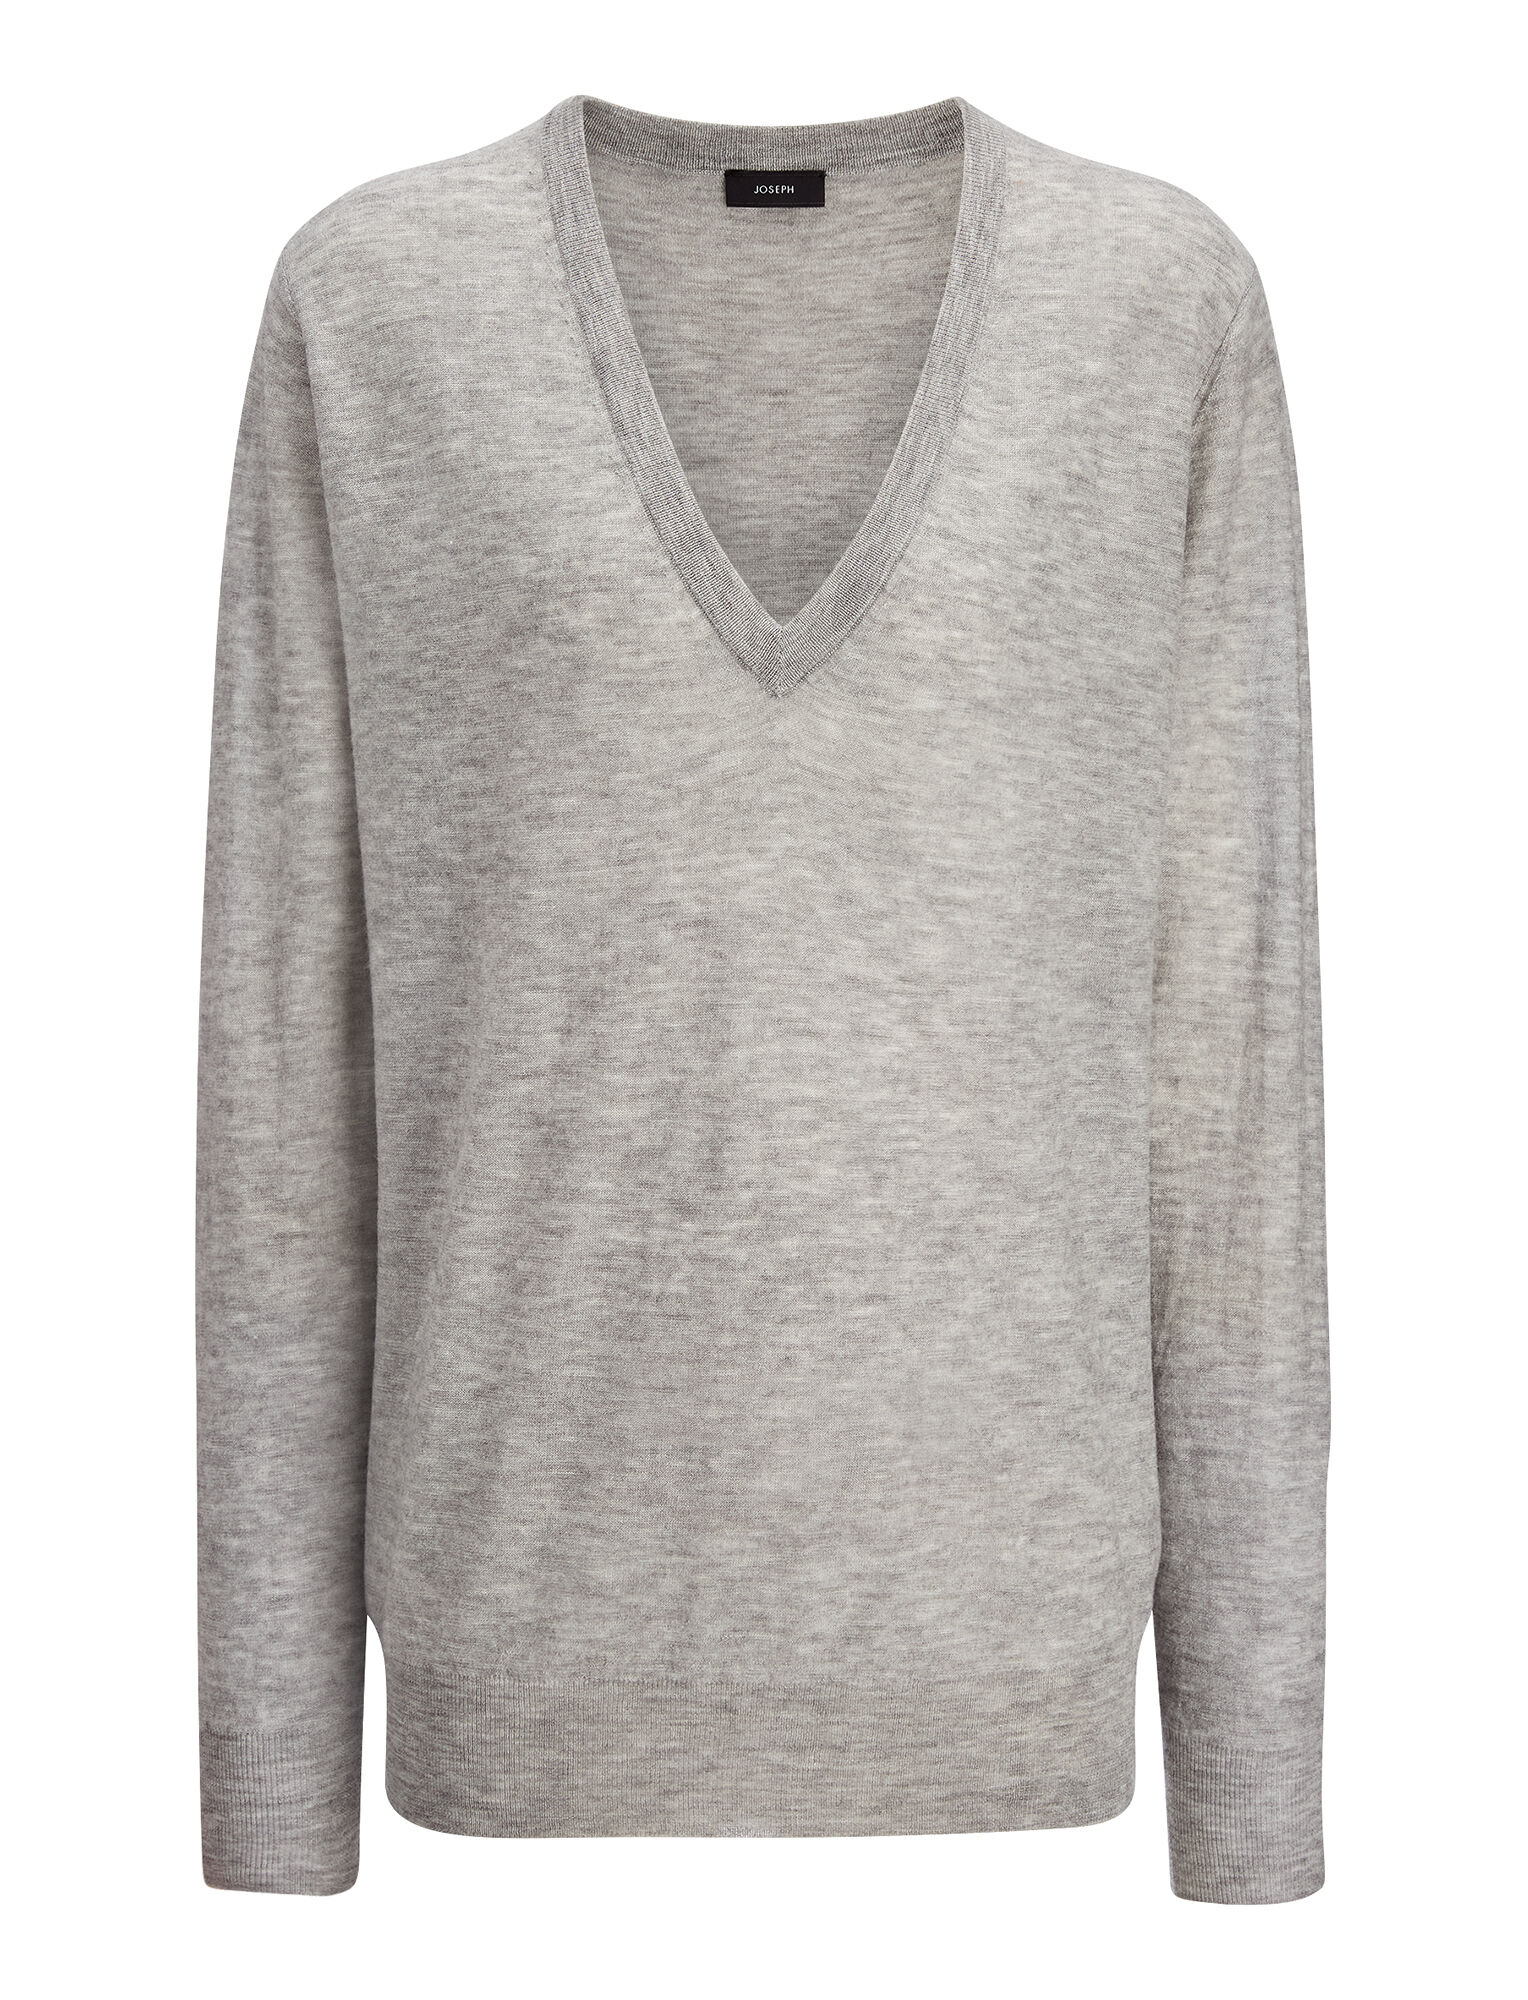 Joseph, Cashair V Neck Sweater, in GREY CHINE